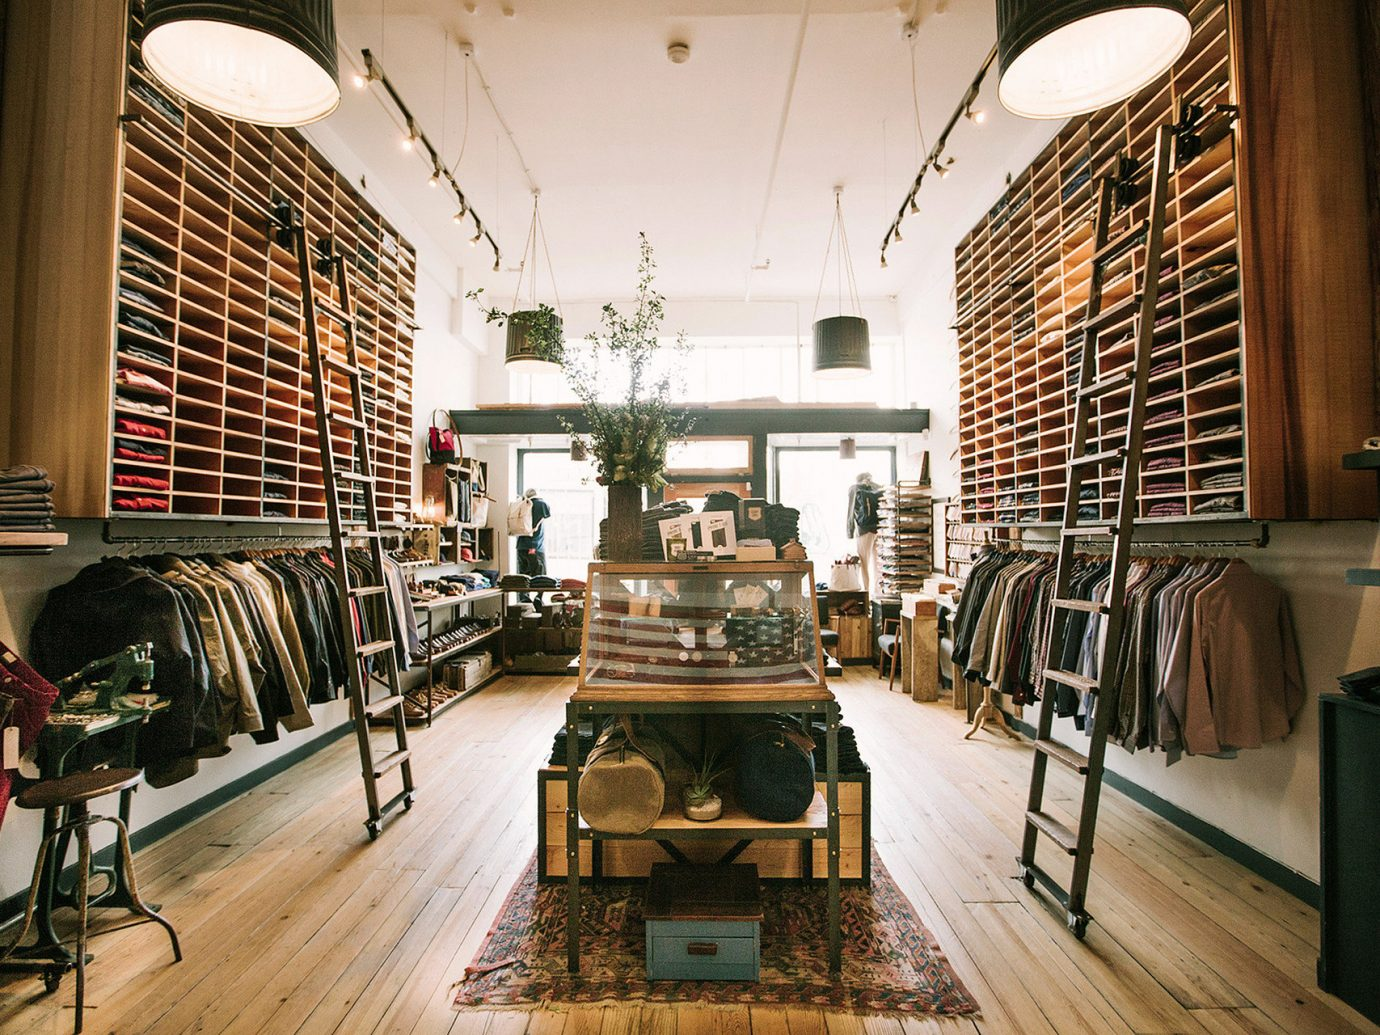 apparel Boutique clothes clothing Hip interior jackets ladders Luxury Shop shopping sophisticated store Style + Design trendy indoor floor building room interior design retail tourist attraction Design furniture